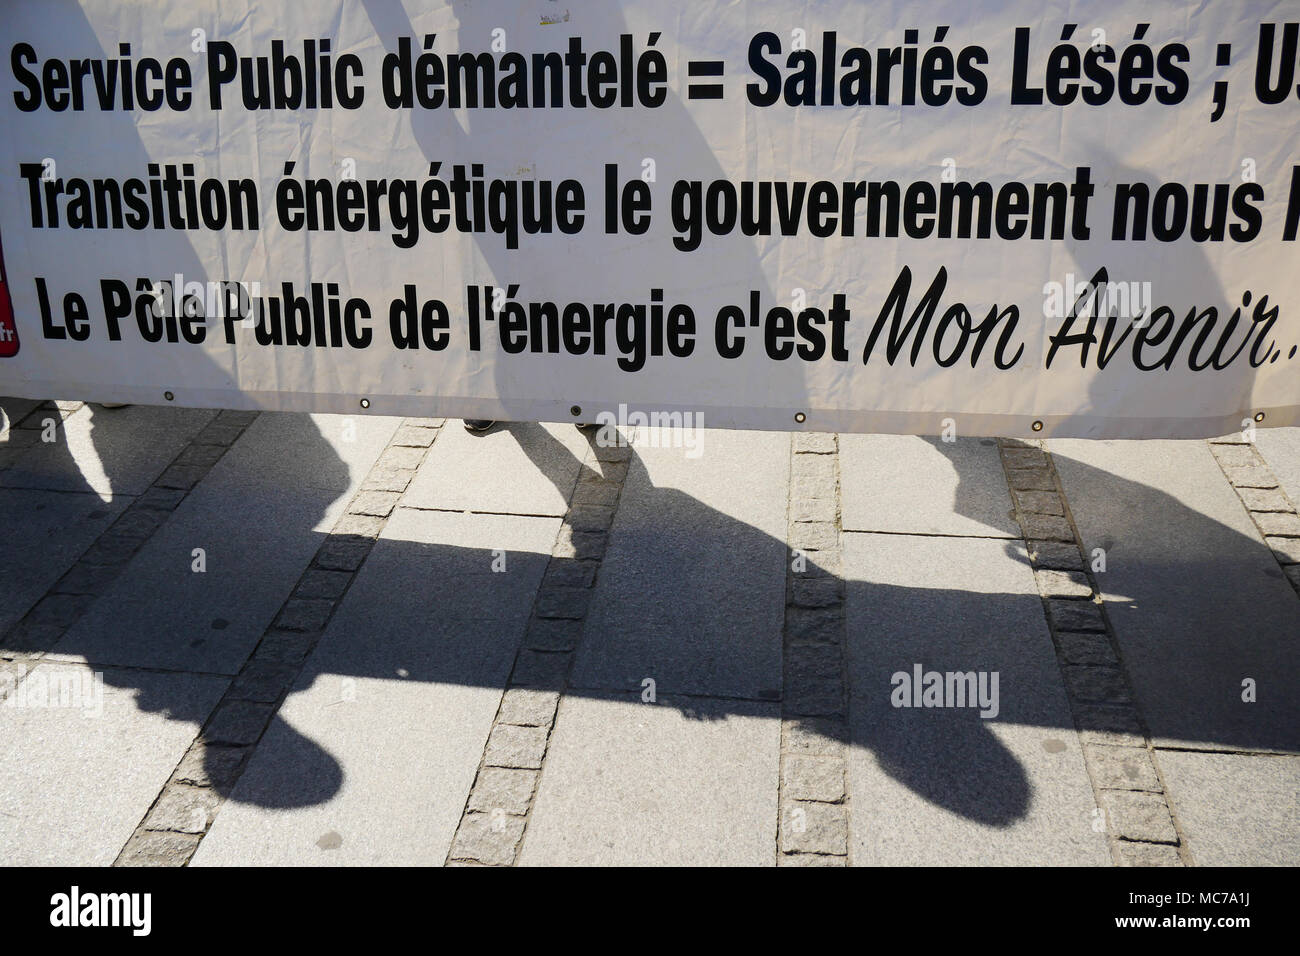 Lyon, France, 13th April 2018: Called by trade unions, SNCF employees are seen in Lyon (Central-Eastern France) on April 13, 2018 as they gather in front of Part-Dieu Railway station on the fifth day of action against status reform engaged by French Government.  Credit: Serge Mouraret/Alamy Live News - Stock Image